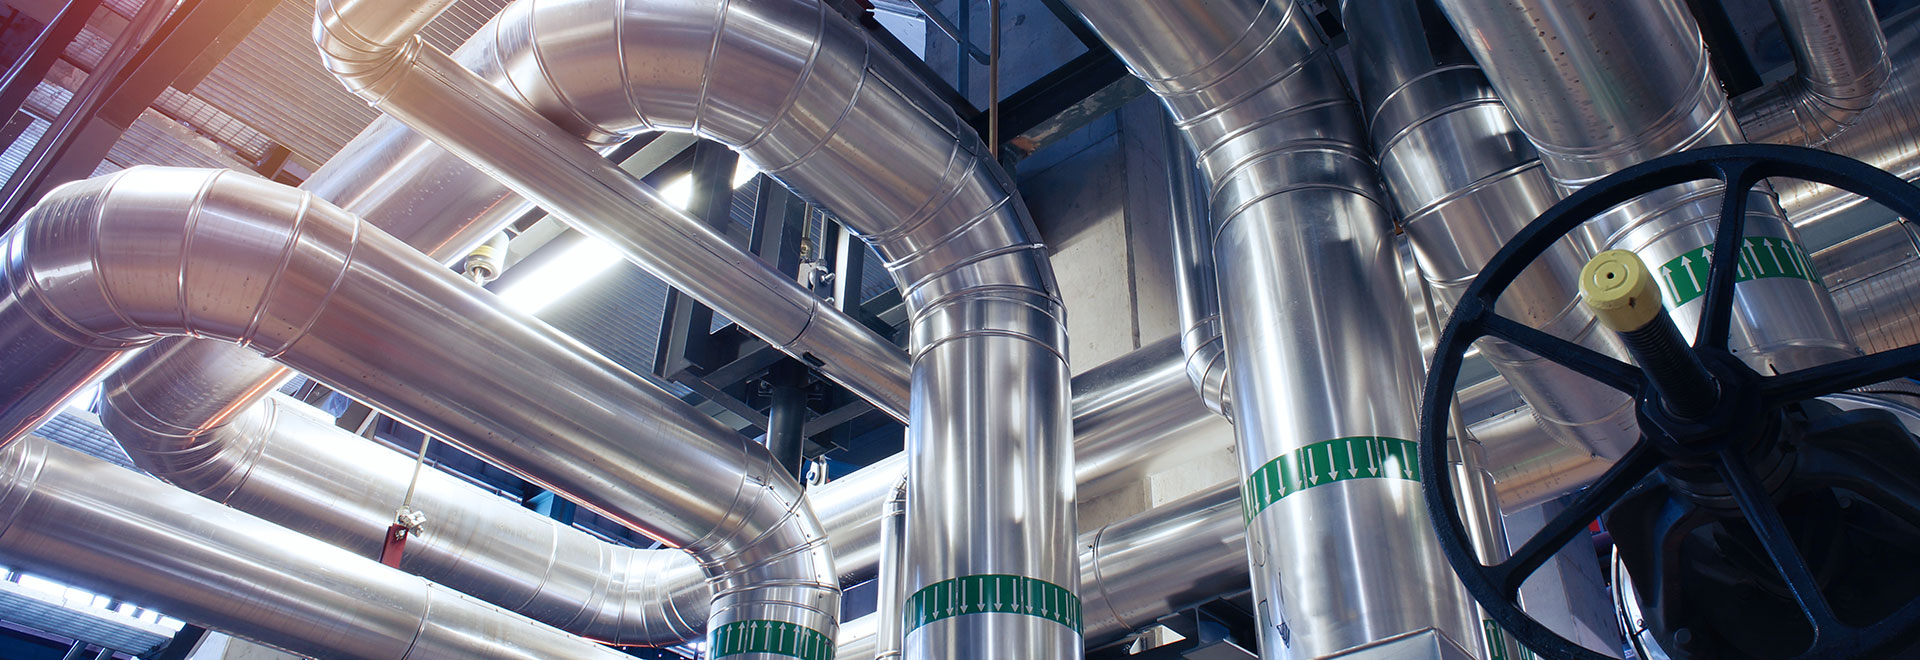 steam and hydronic specialists